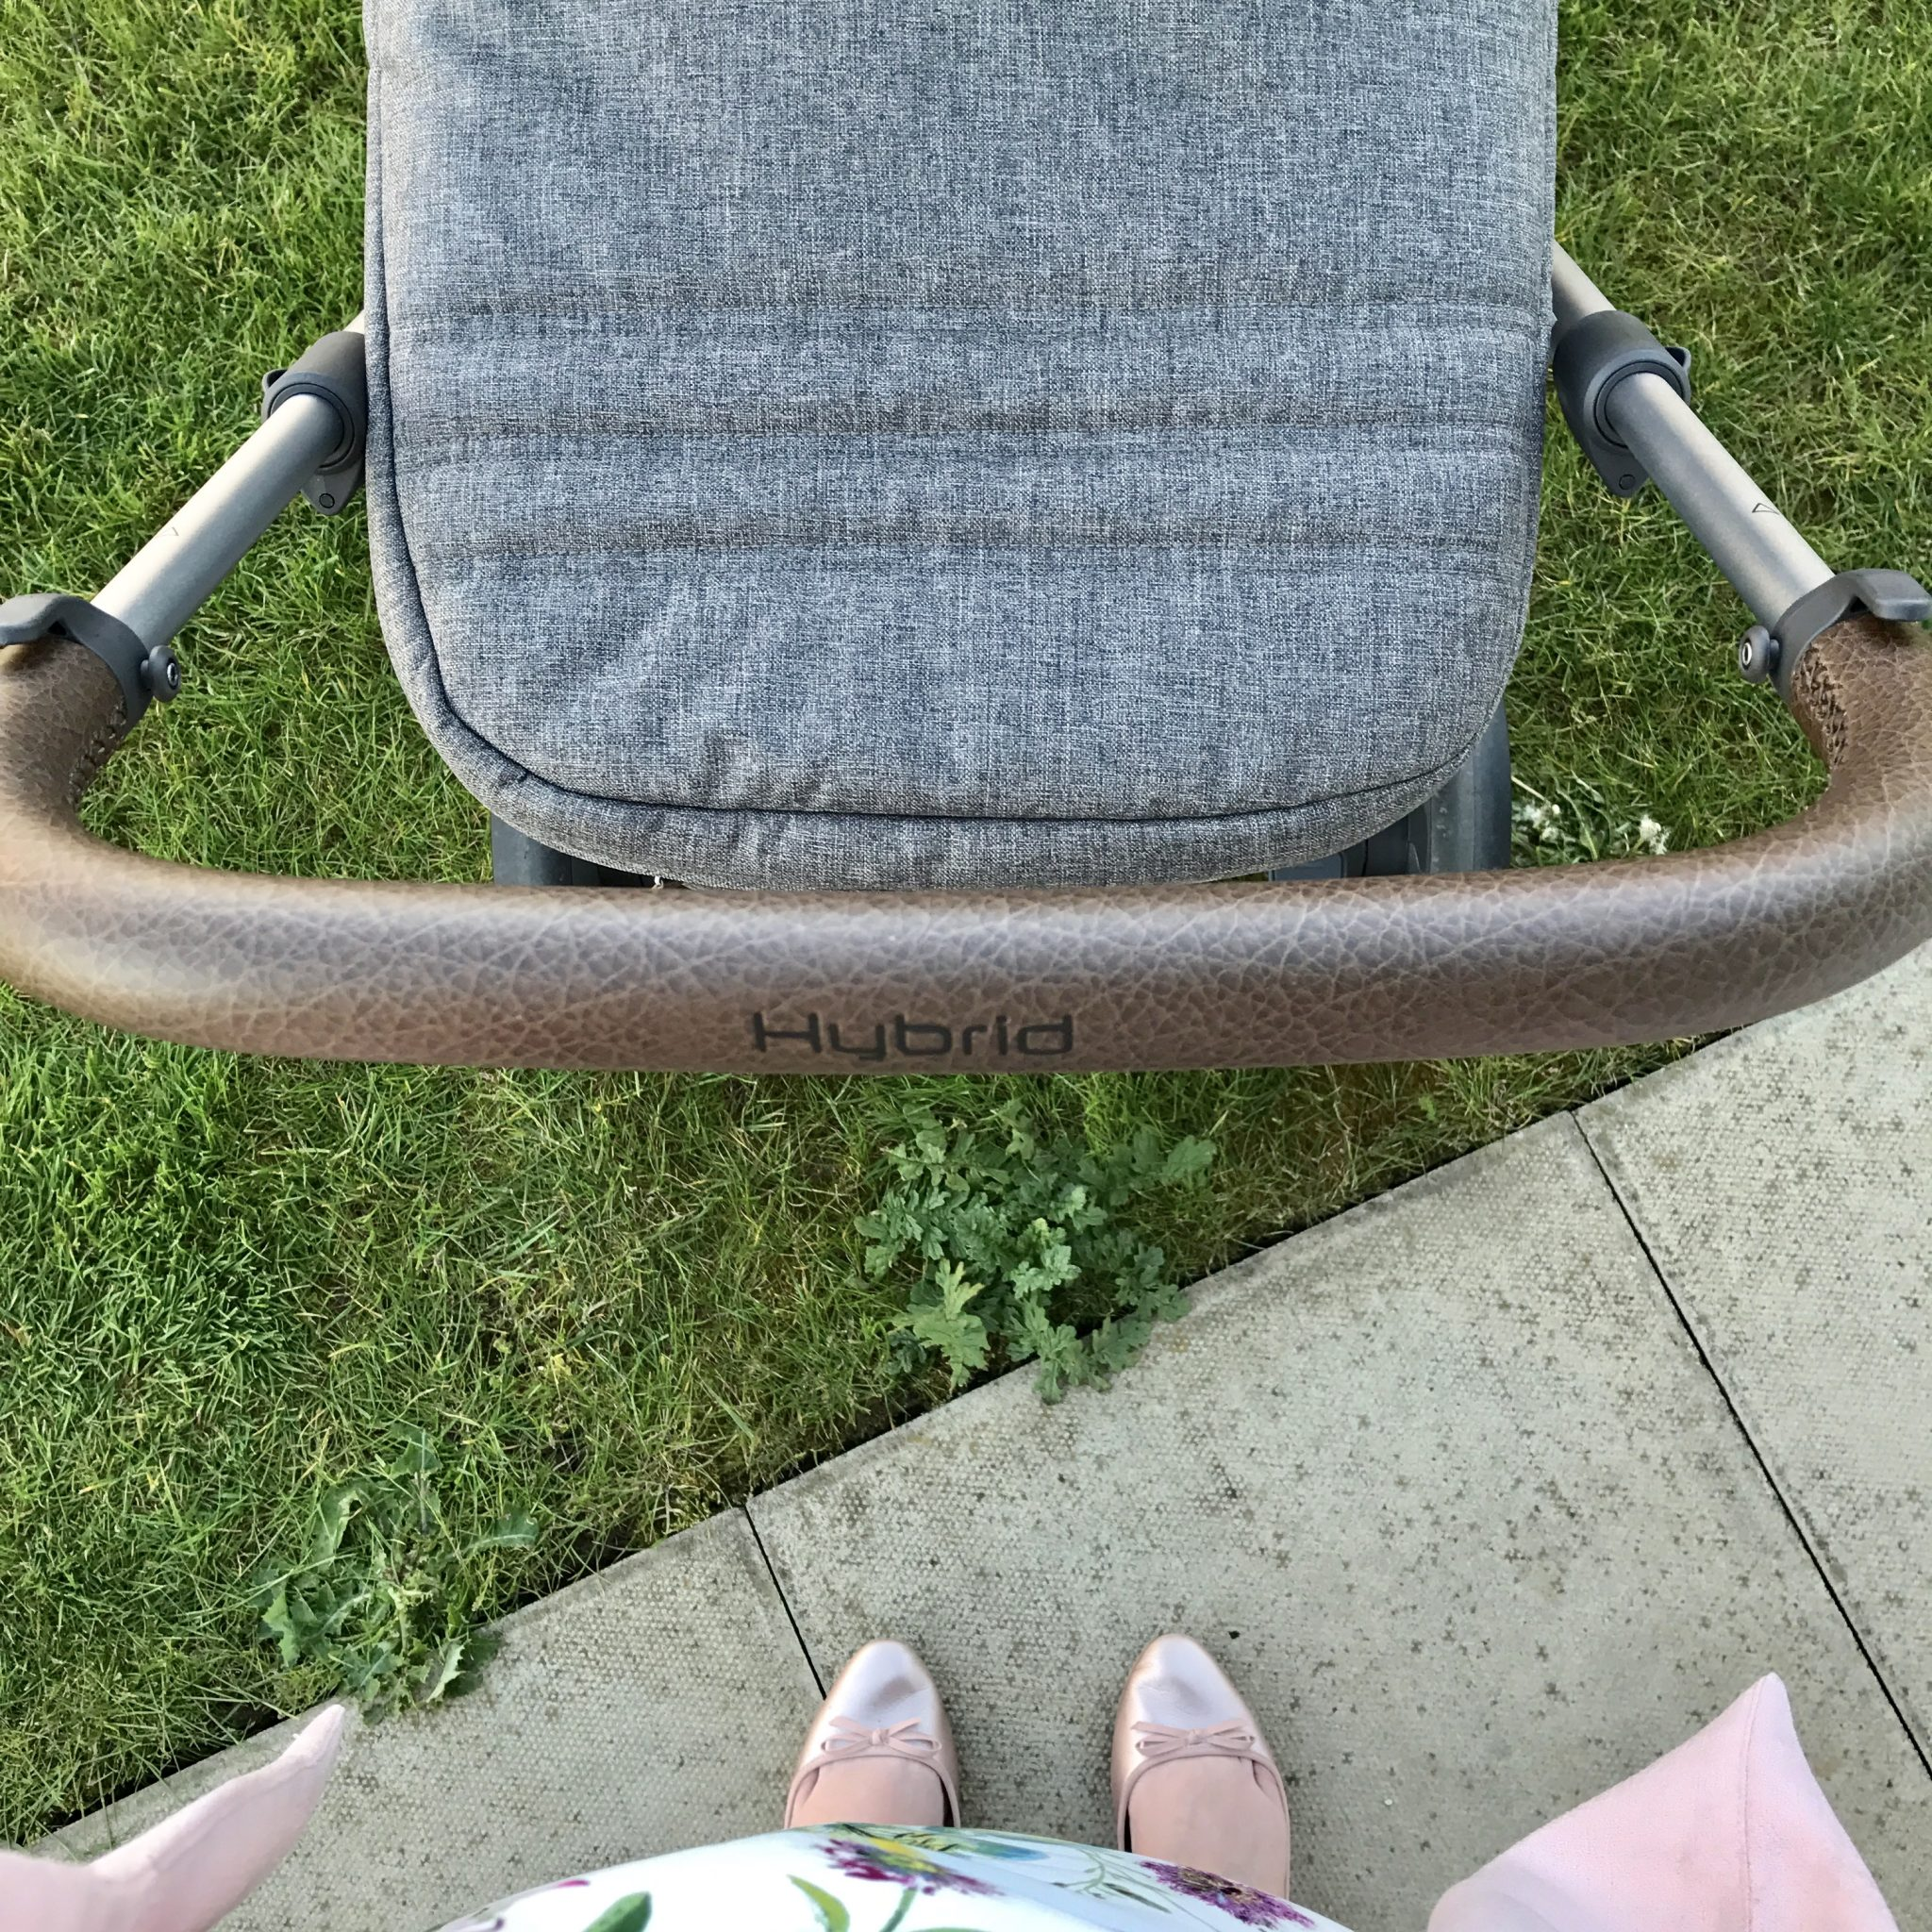 Hybrid Stroller by Babystyle - What is it & is it easy to assemble?